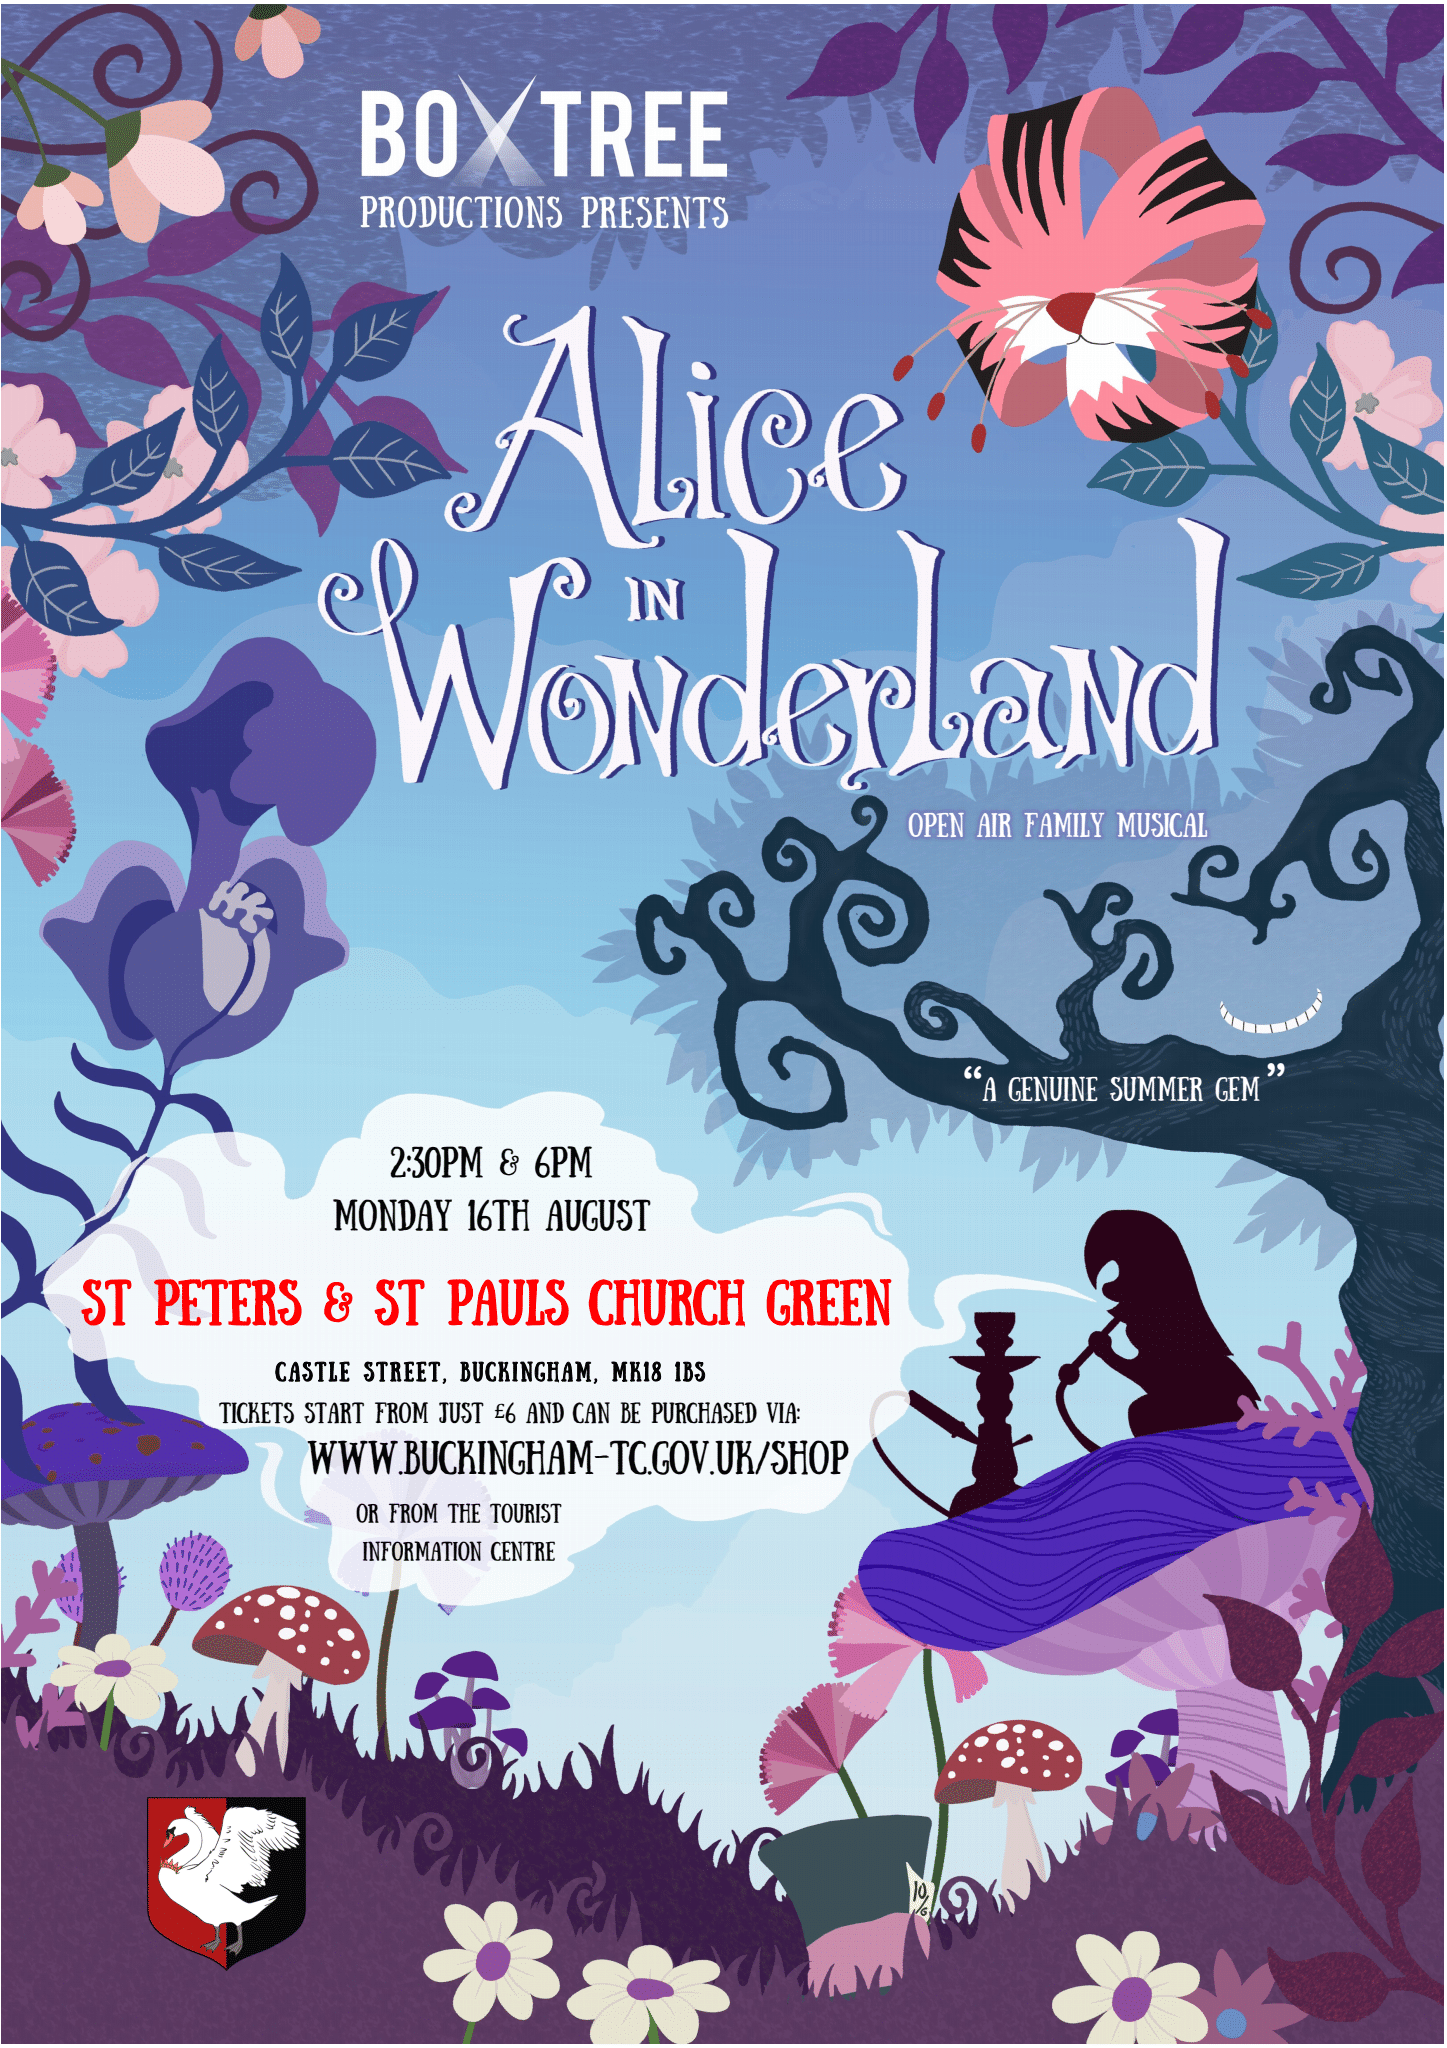 Alice in wonderland on the church green poster